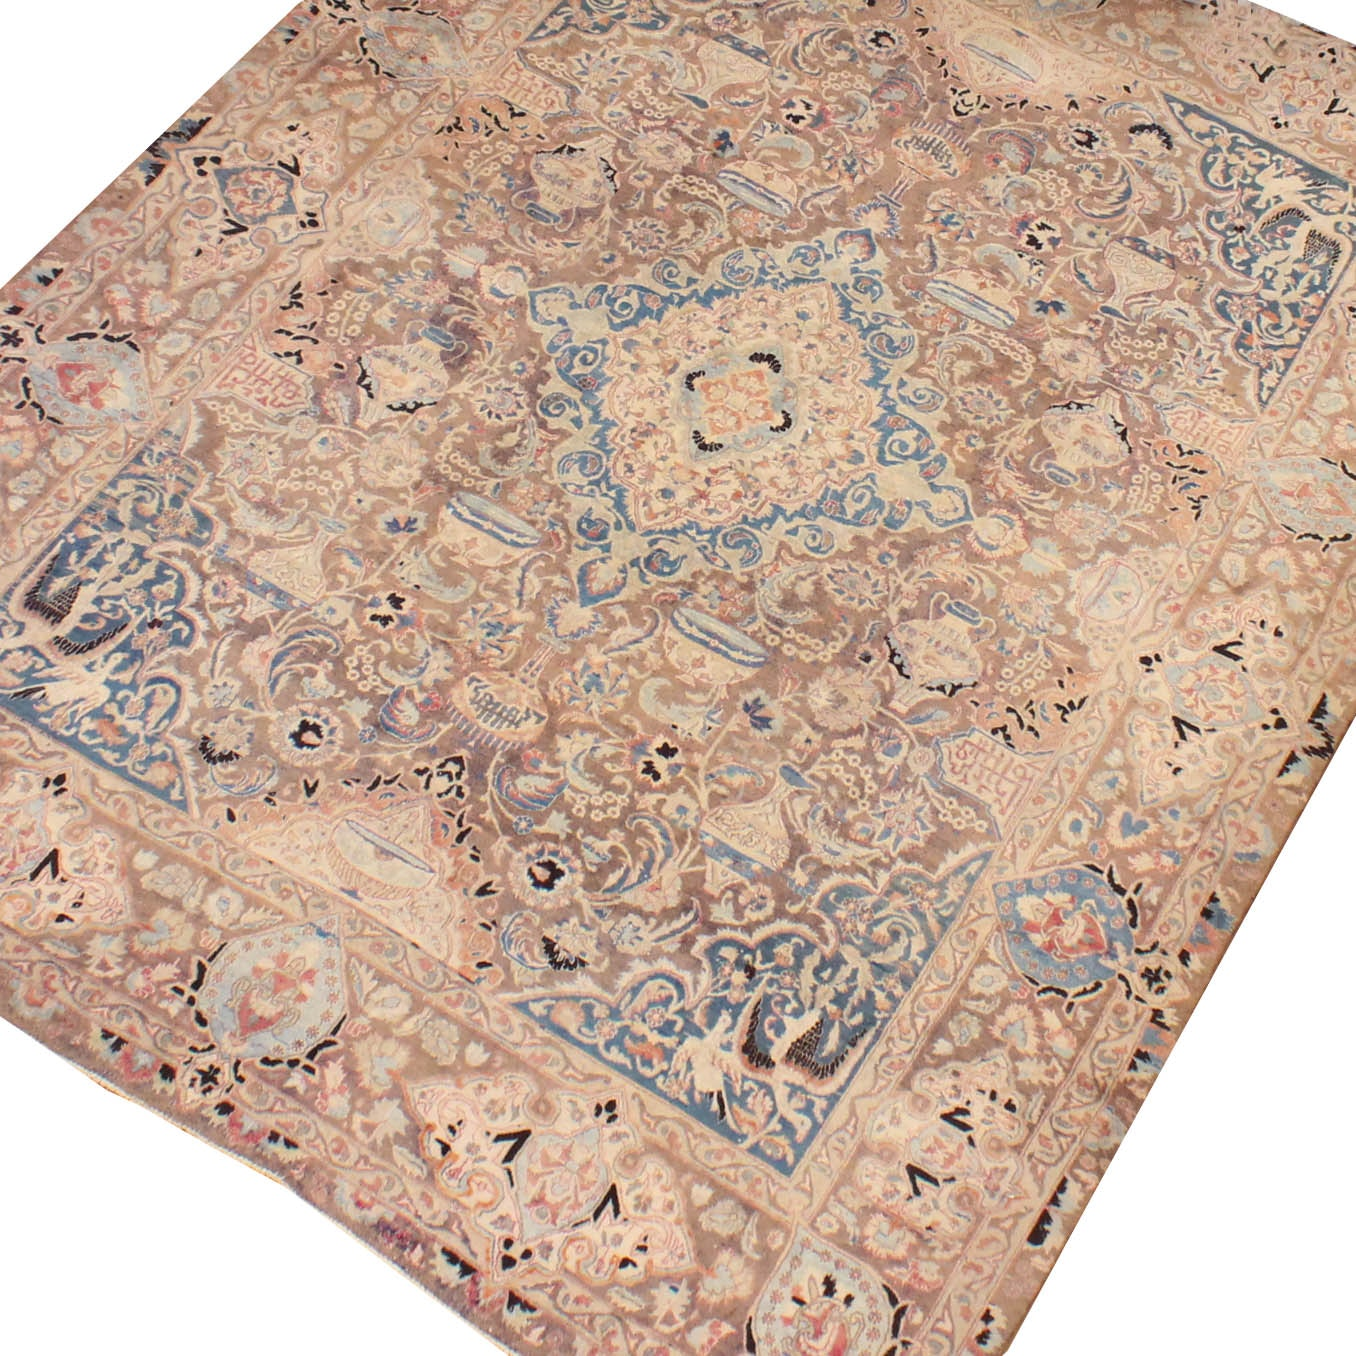 Hand-Knotted Room Size Persian Rug